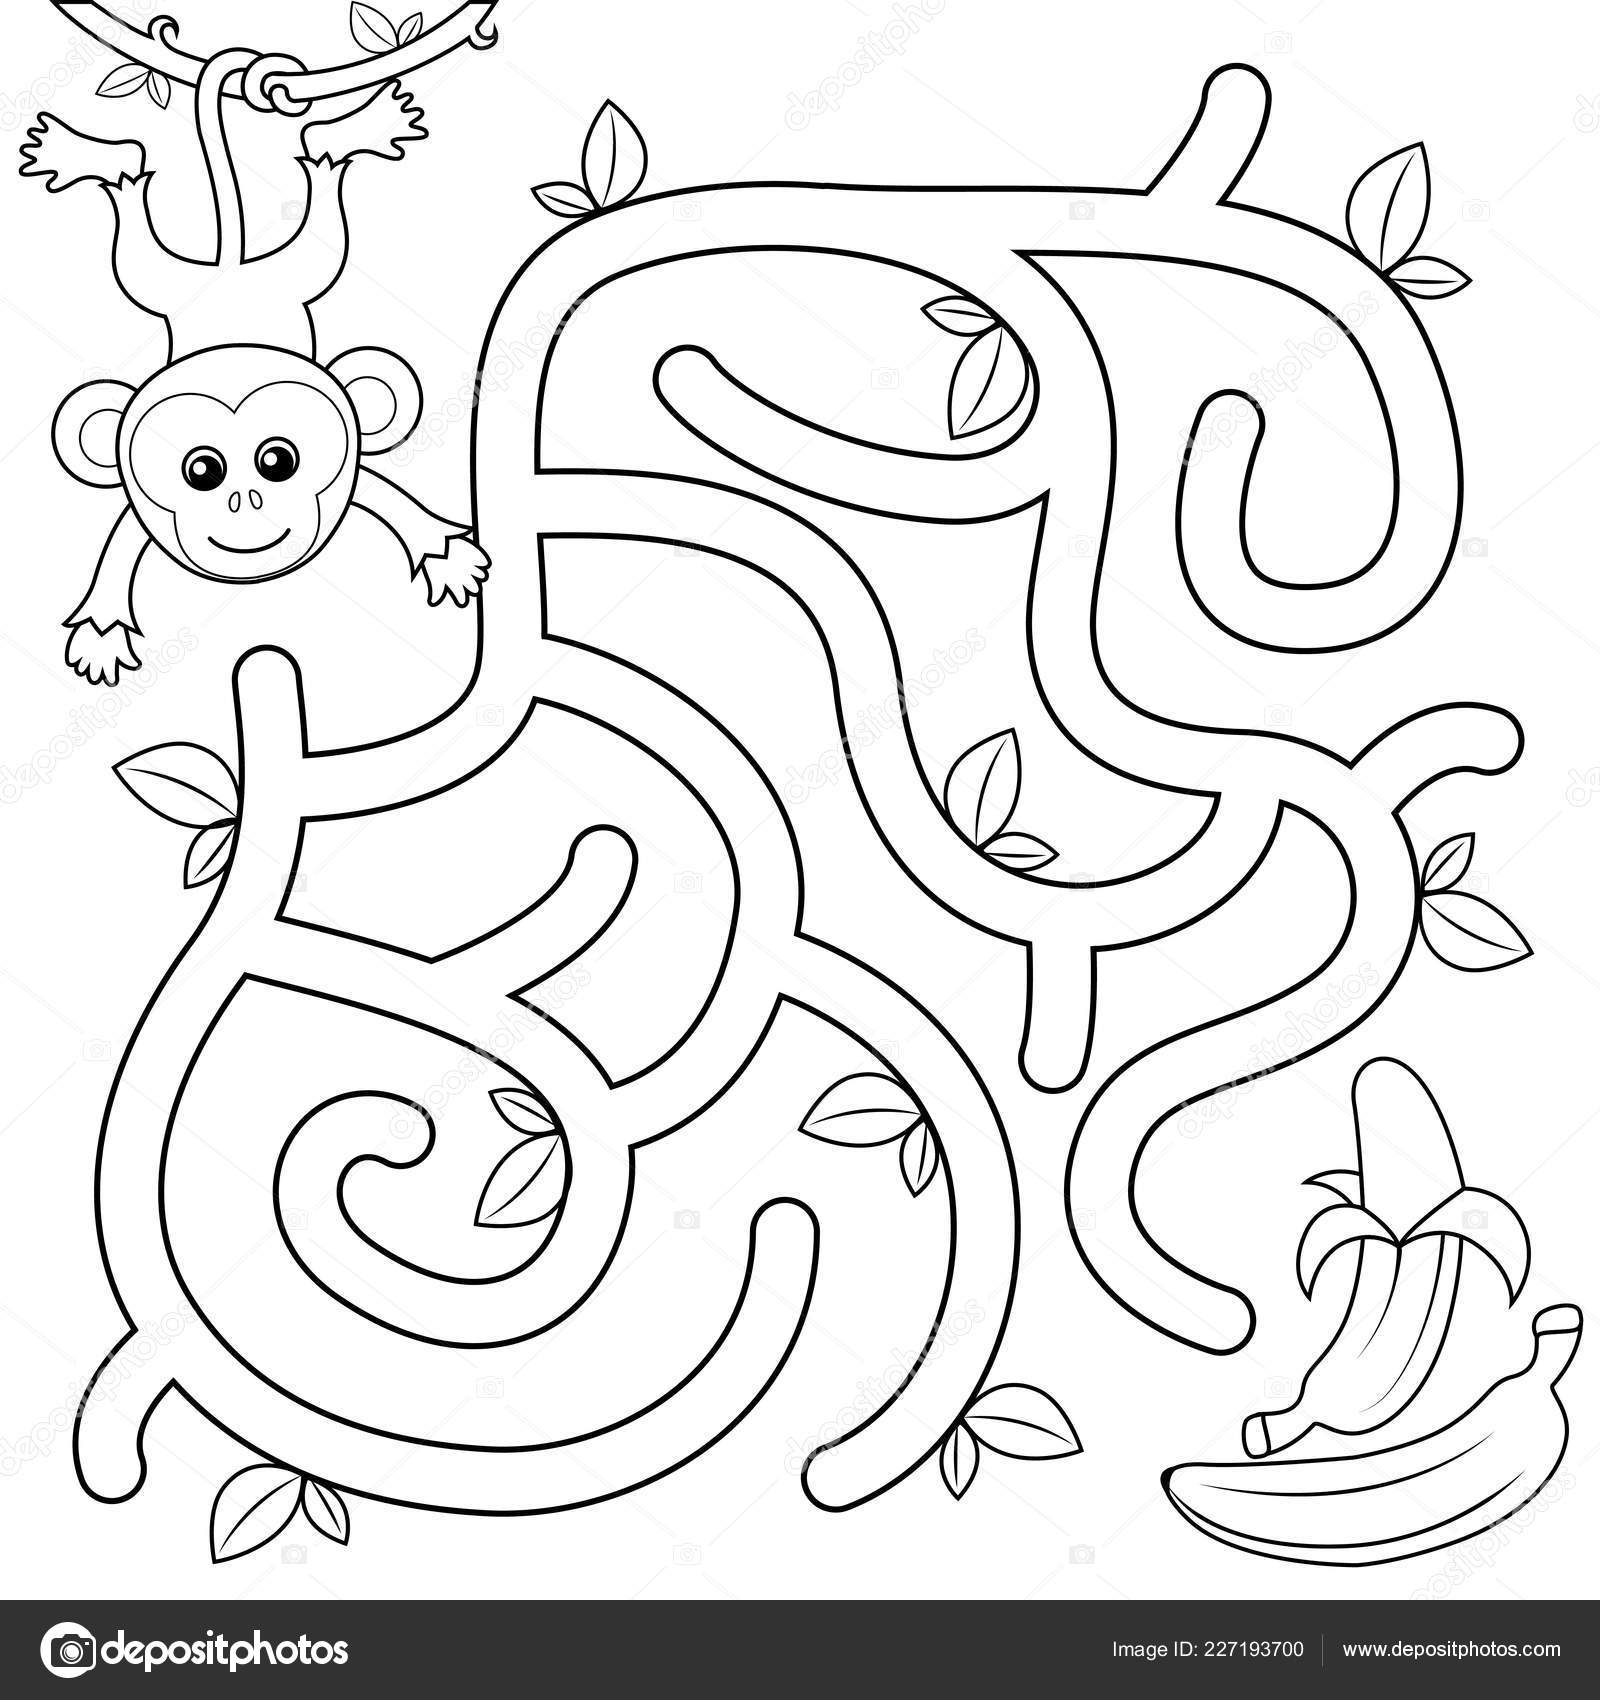 Help Monkey Find Path Banana Labyrinth Maze Game Kids